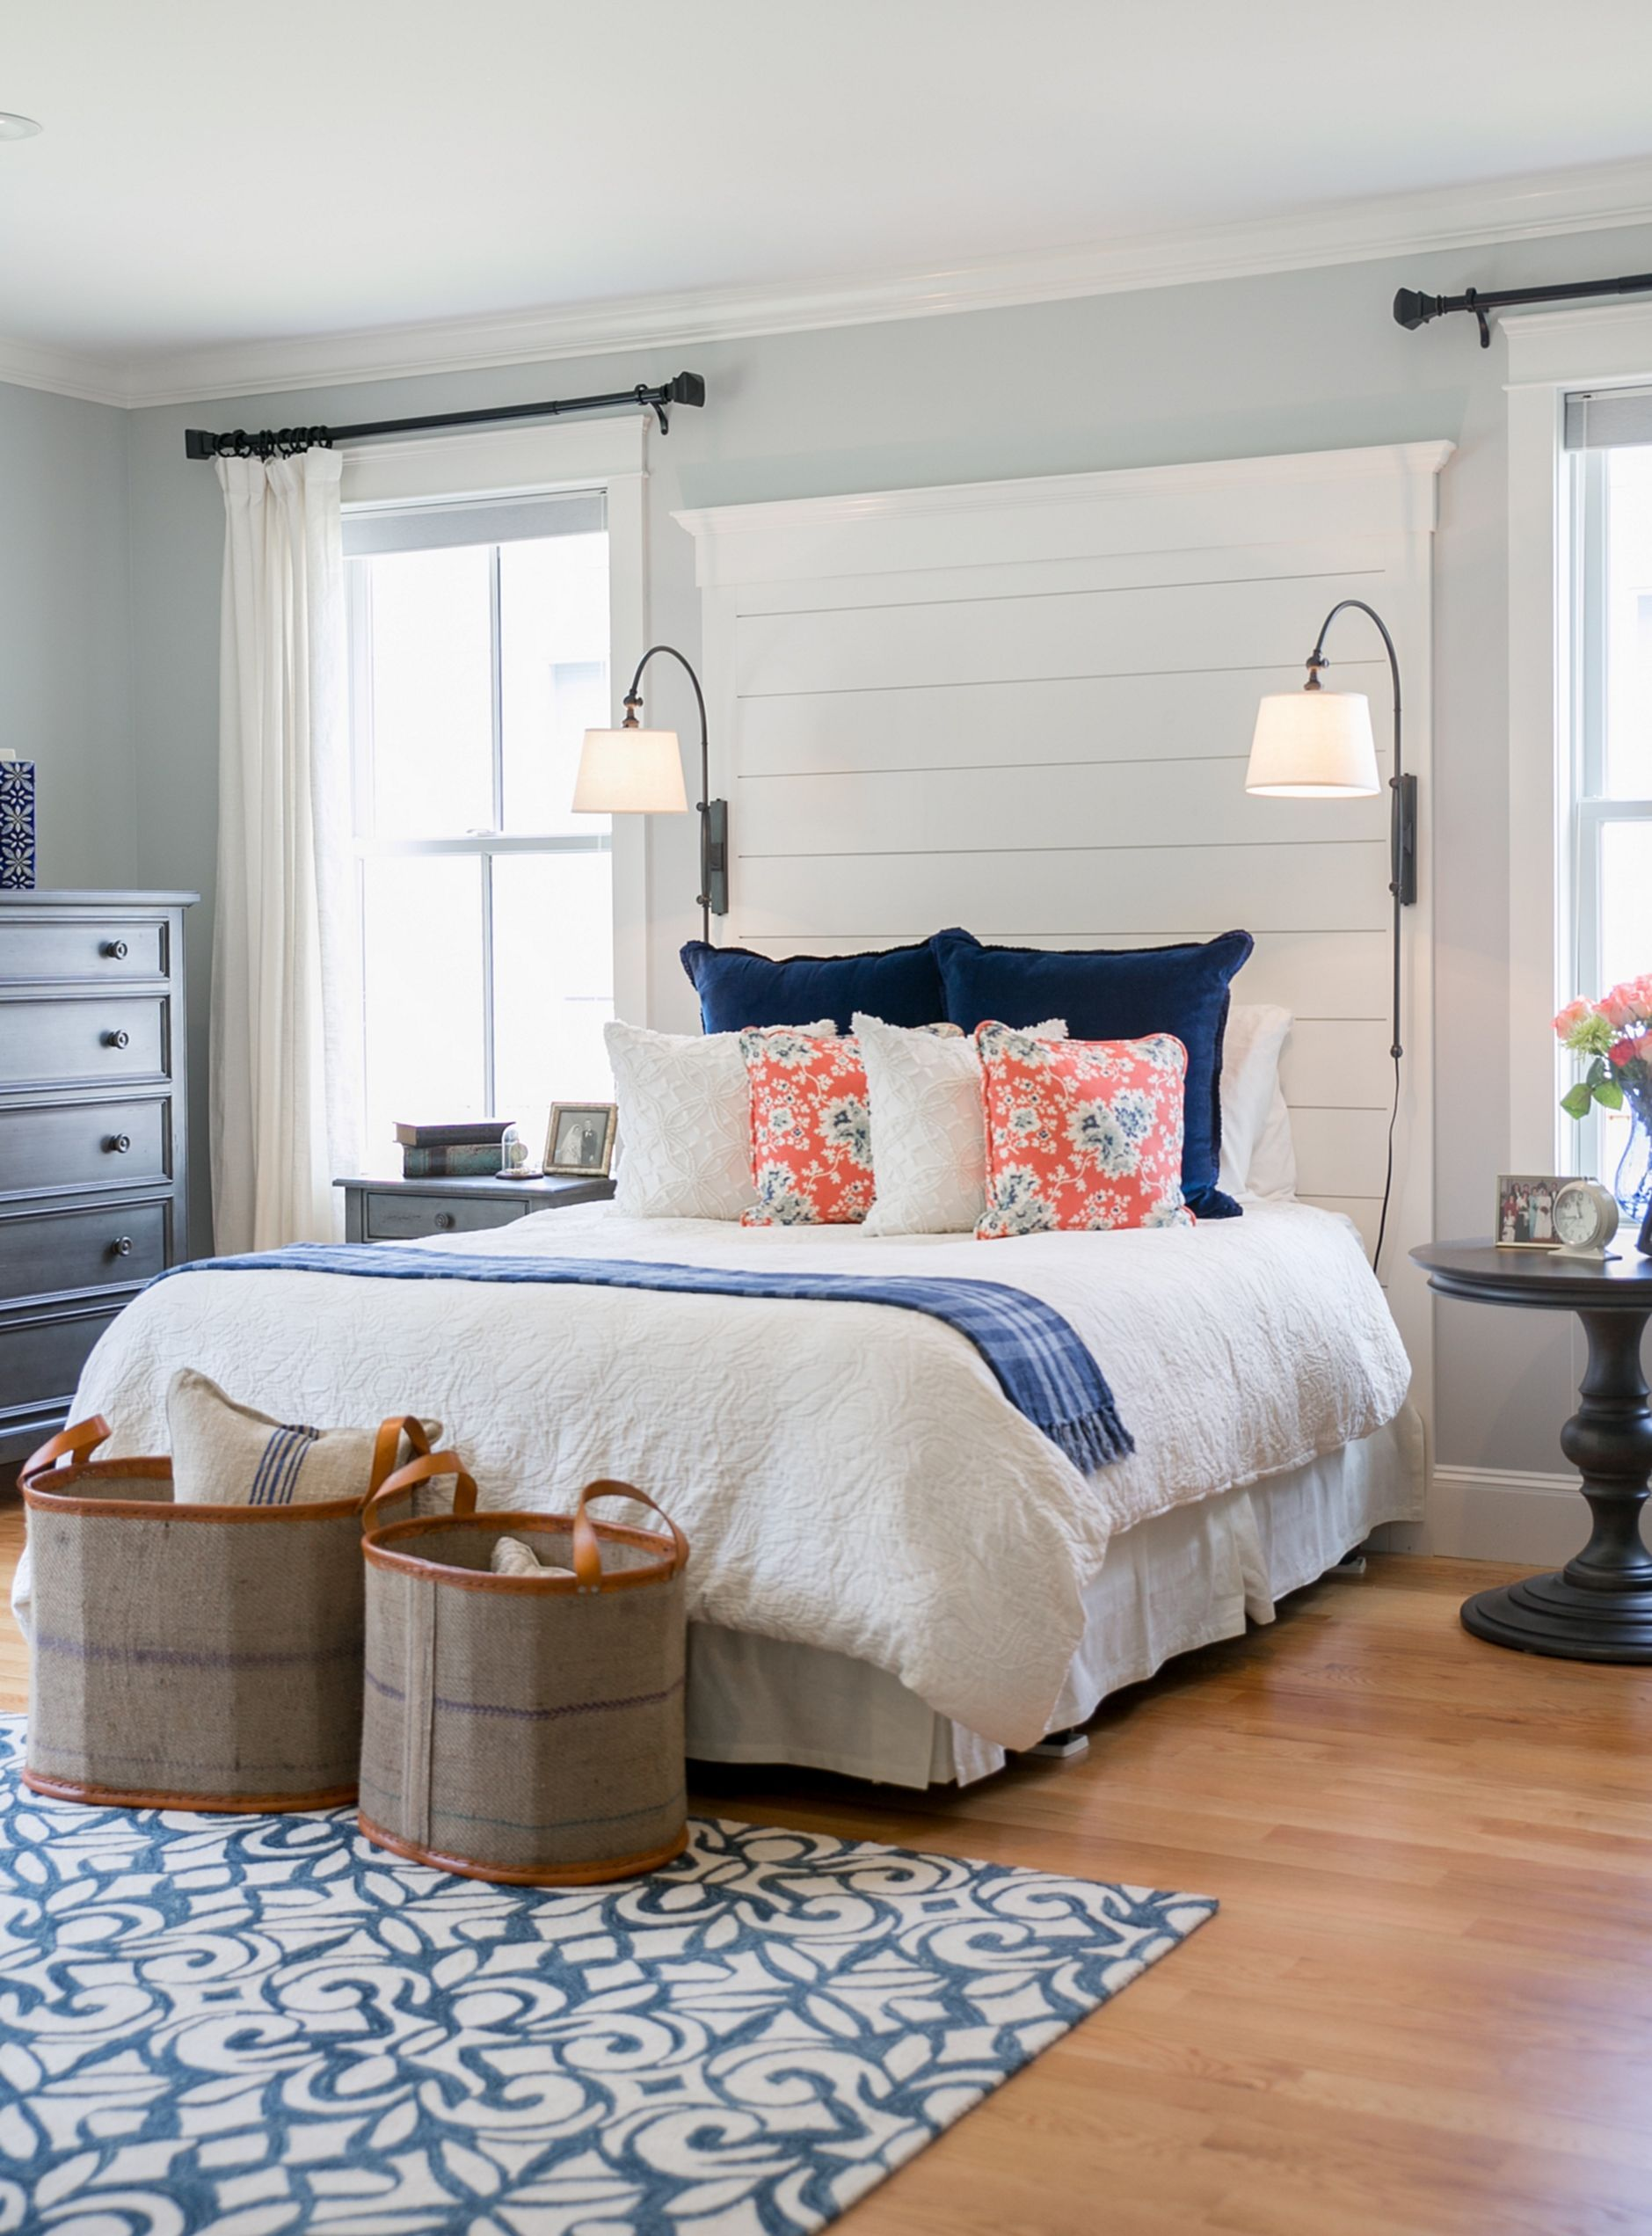 Top 25 Awesome Tiny Bedroom Design Ideas   Spare Room Decor